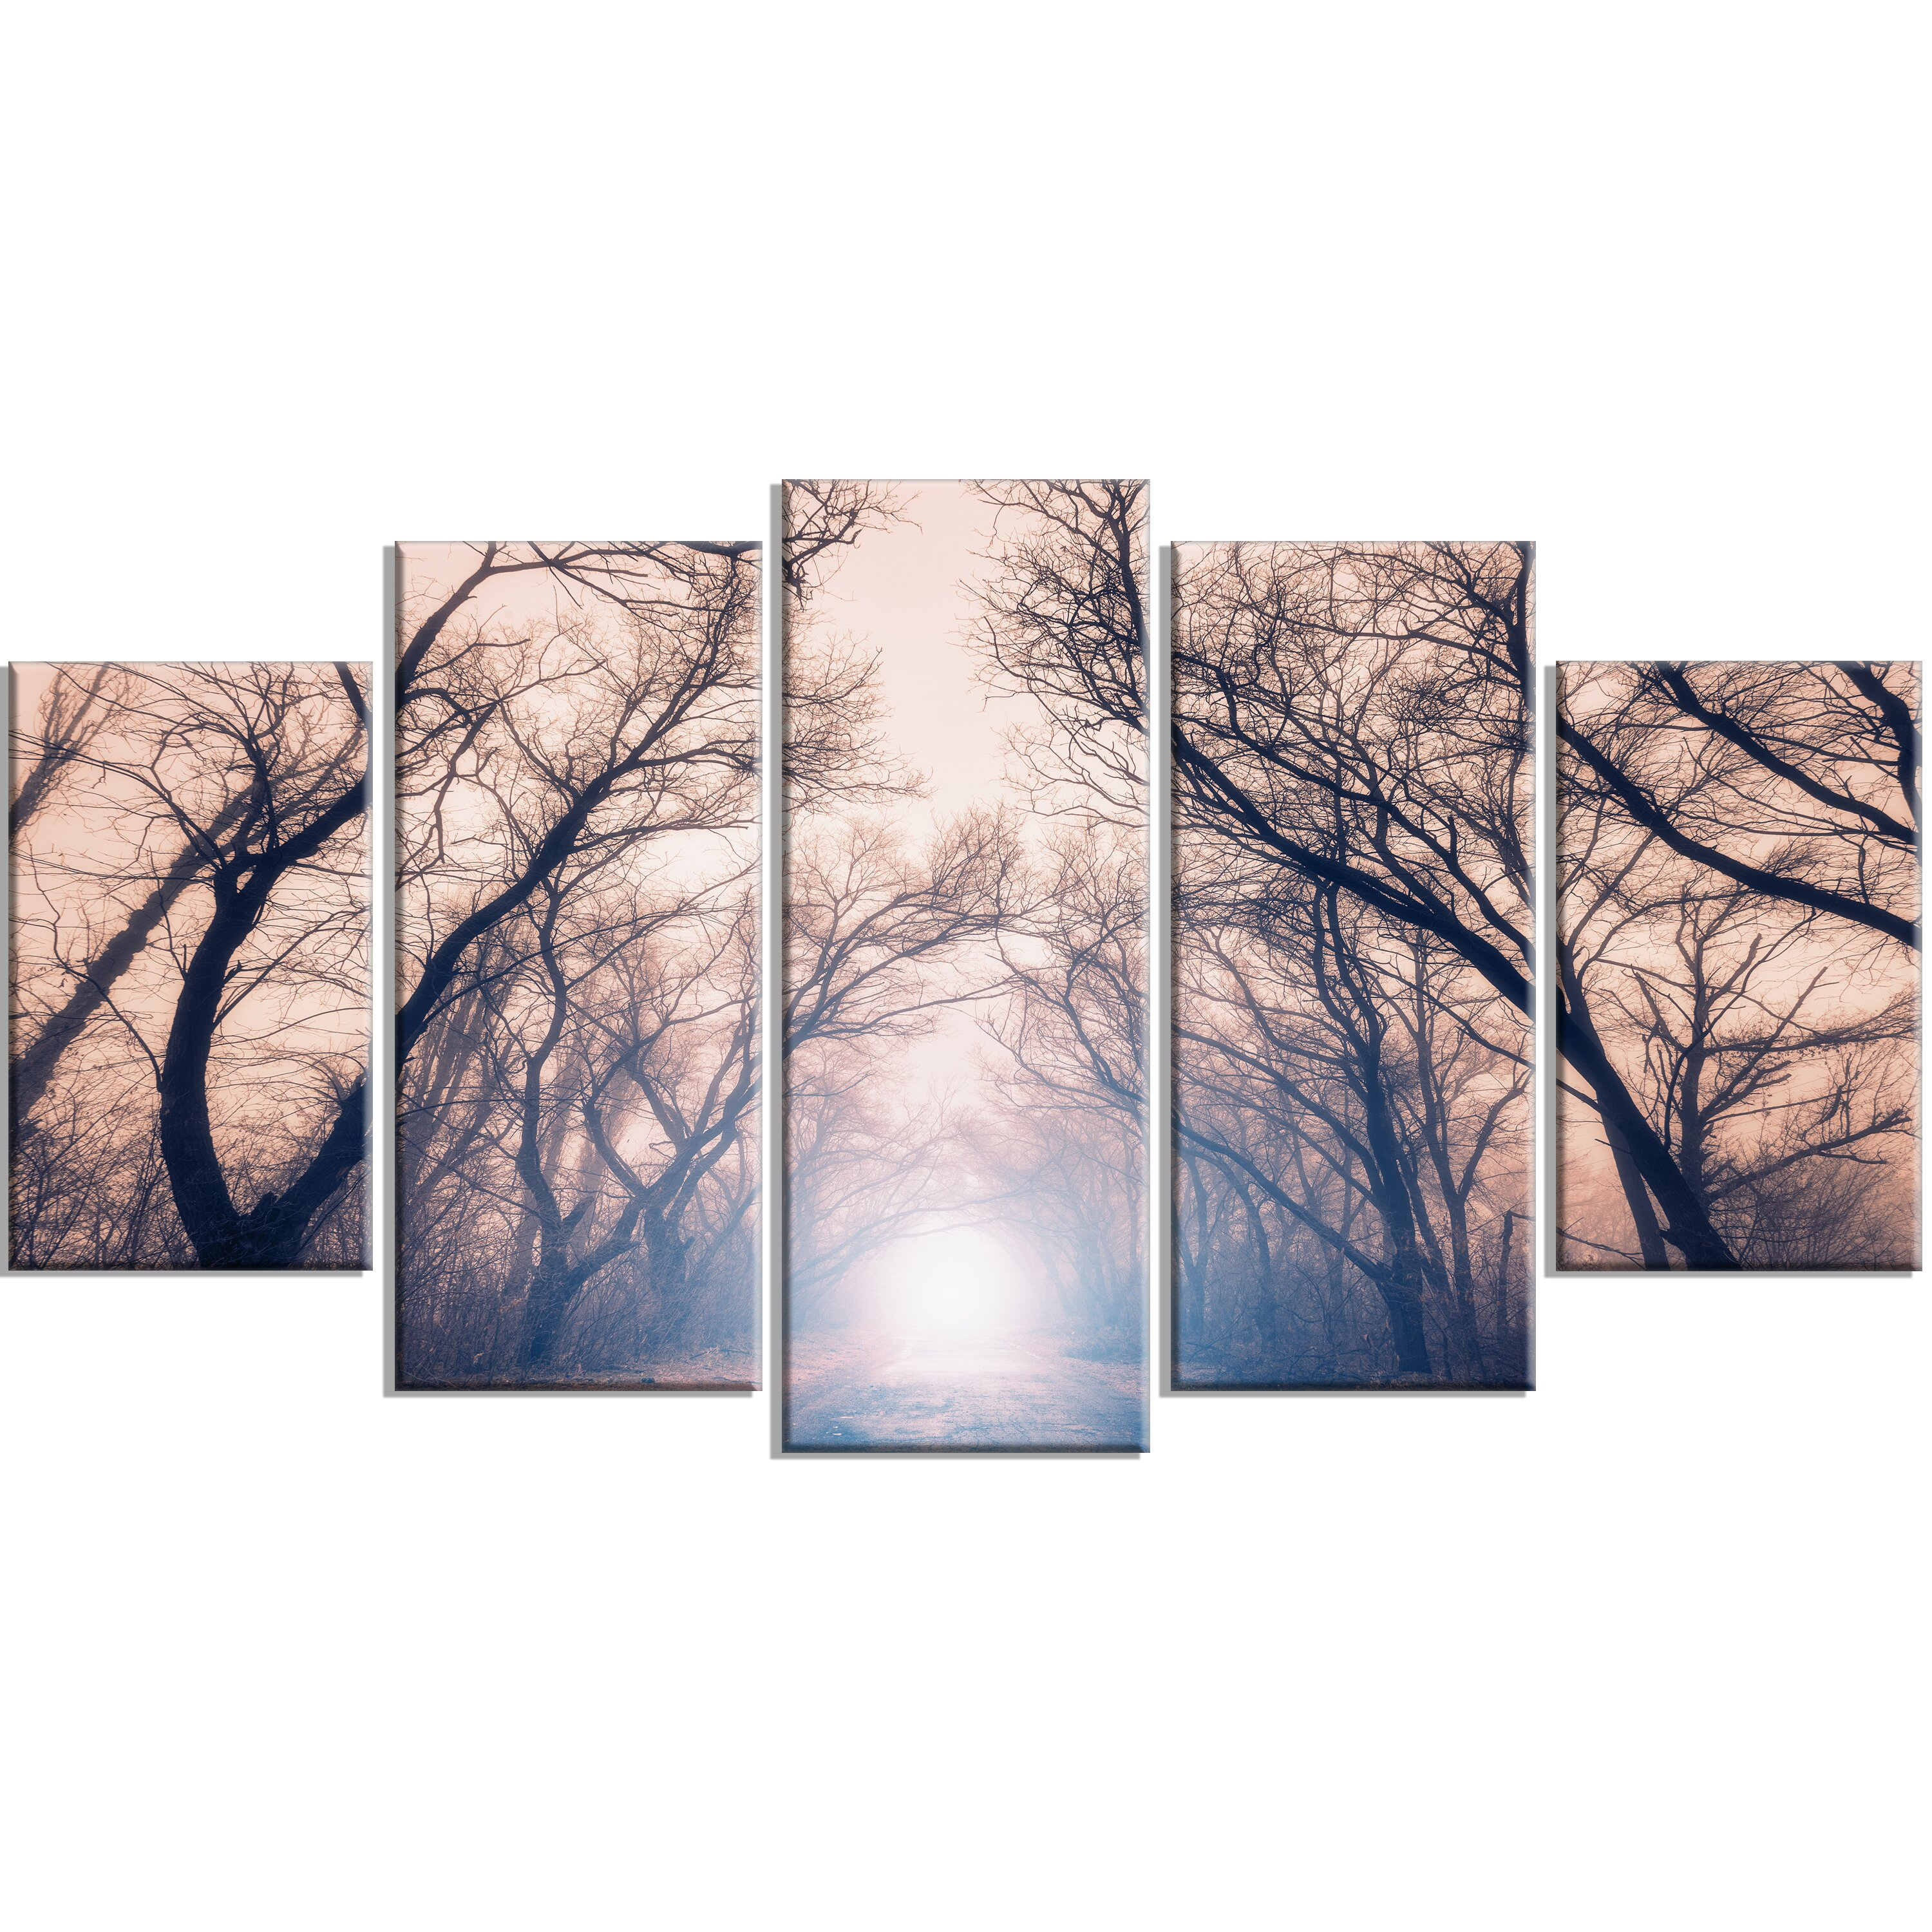 designart 39 mysterious sunlight in forest 39 5 piece wall art on wrapped canvas set. Black Bedroom Furniture Sets. Home Design Ideas